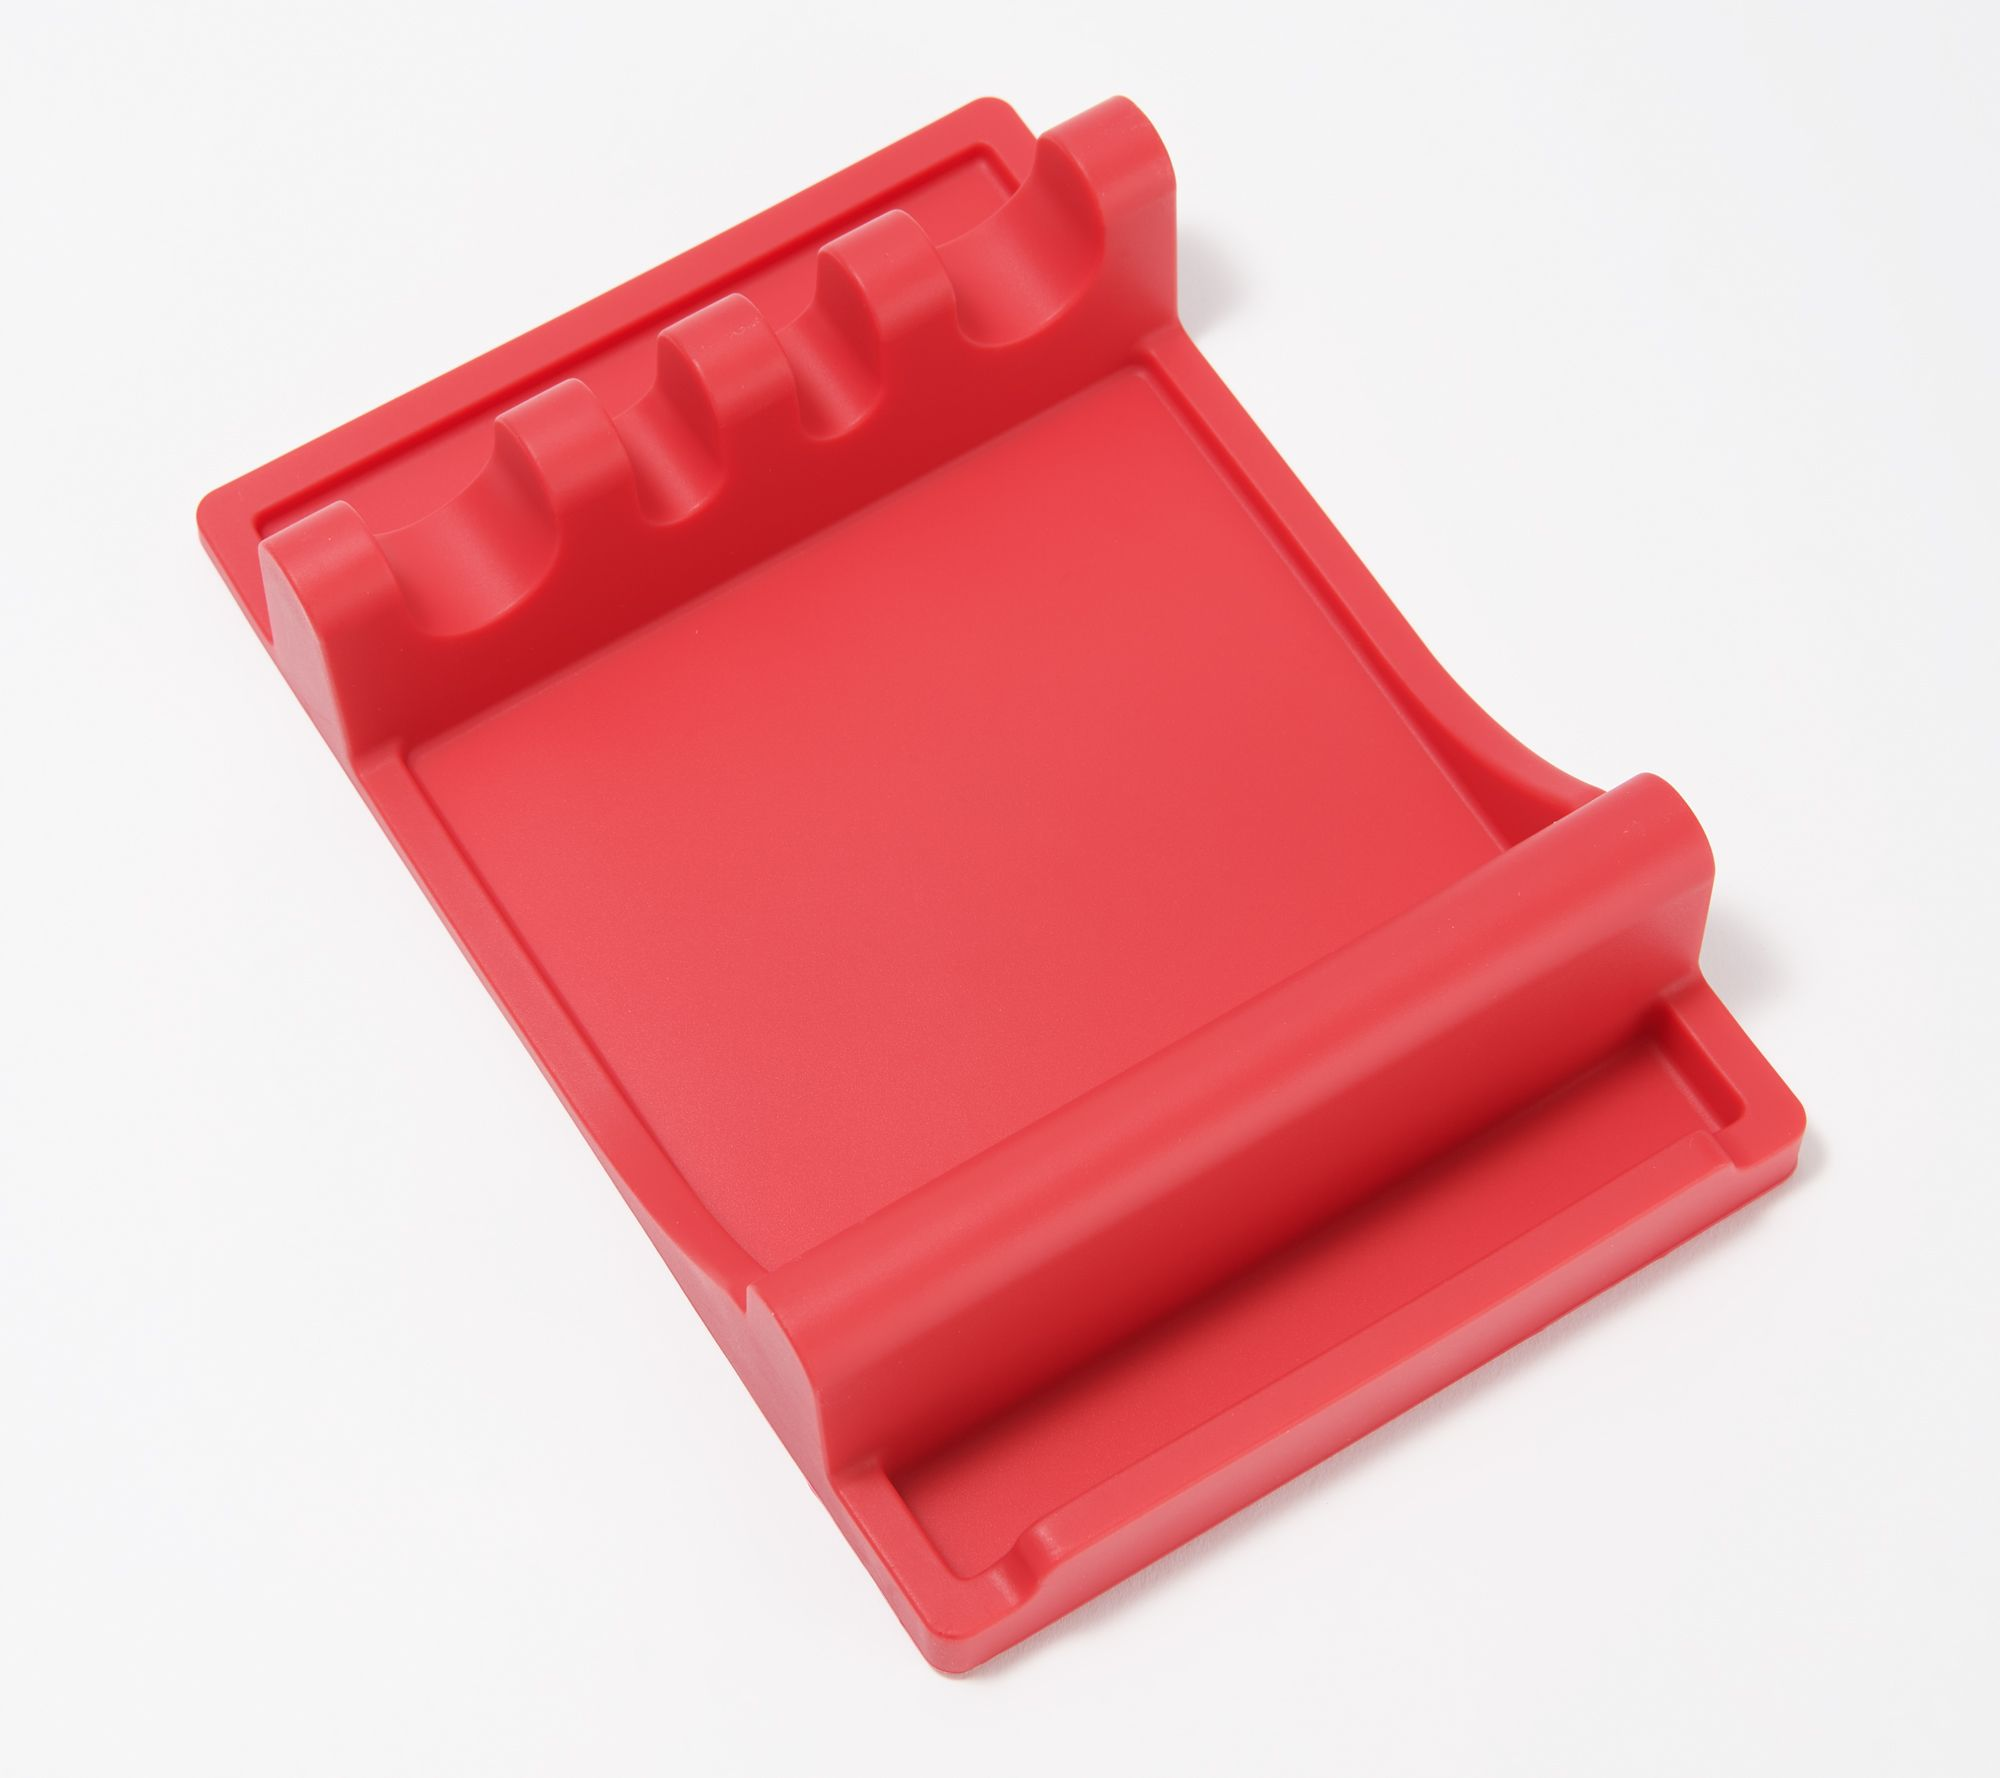 Silicone Utensil Rest with Lid Holder